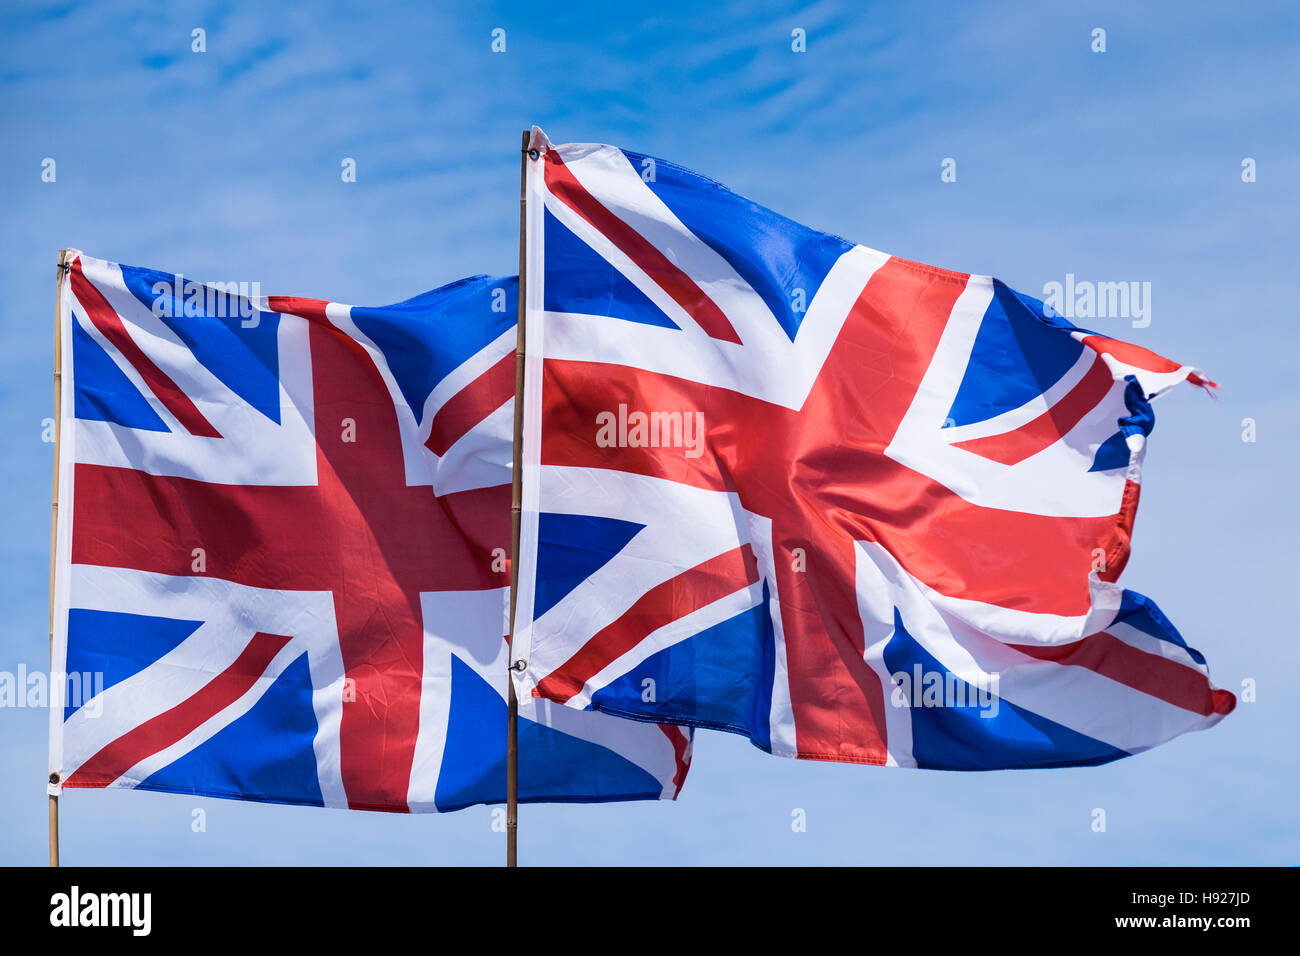 Two Union flags flying against a blue sky. - Stock Image